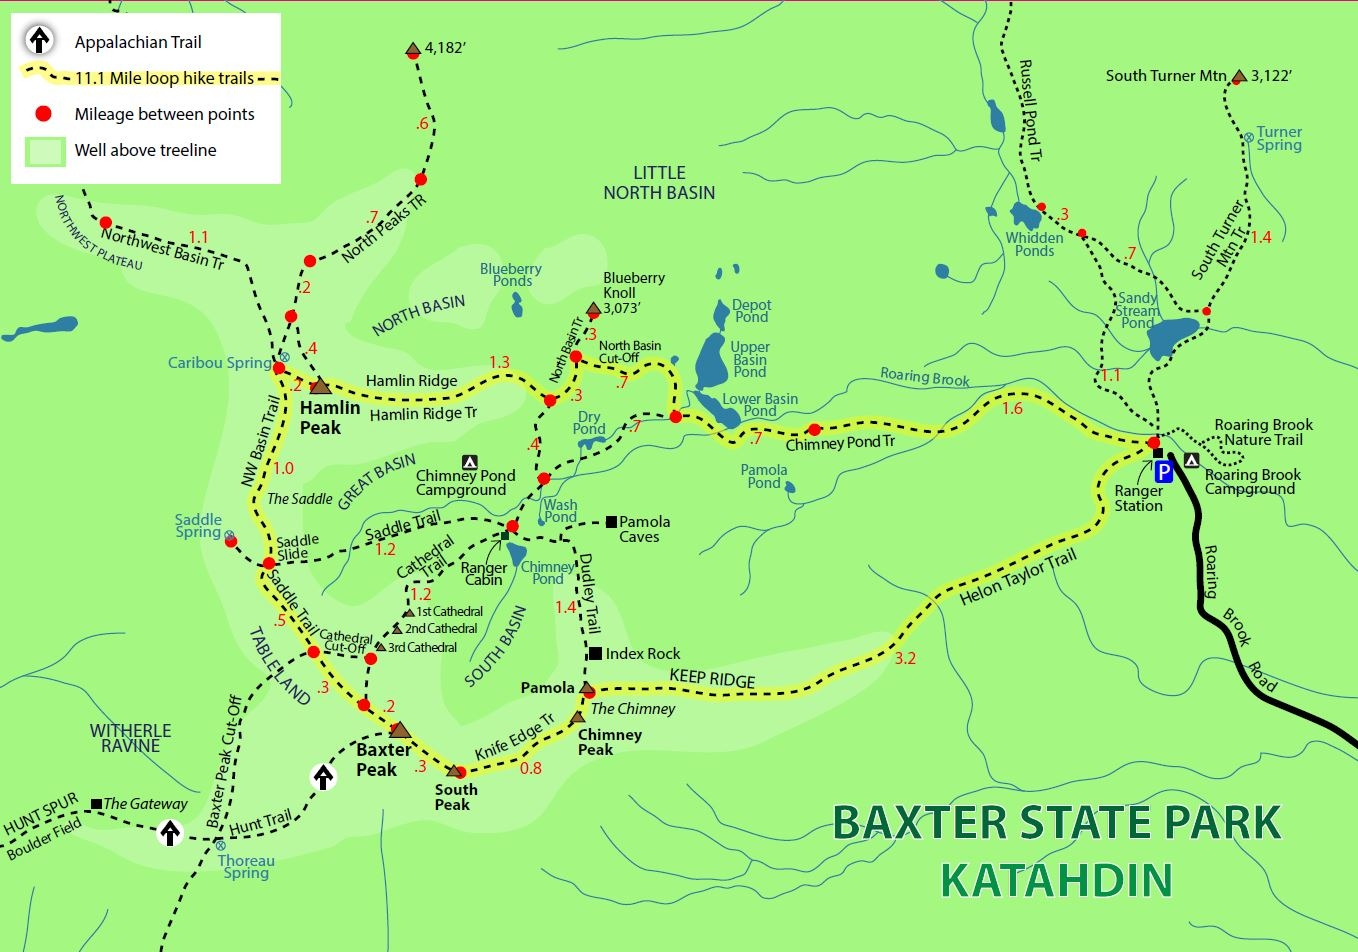 Starting SOBO: How to Get to Mount Katahdin - The Trek